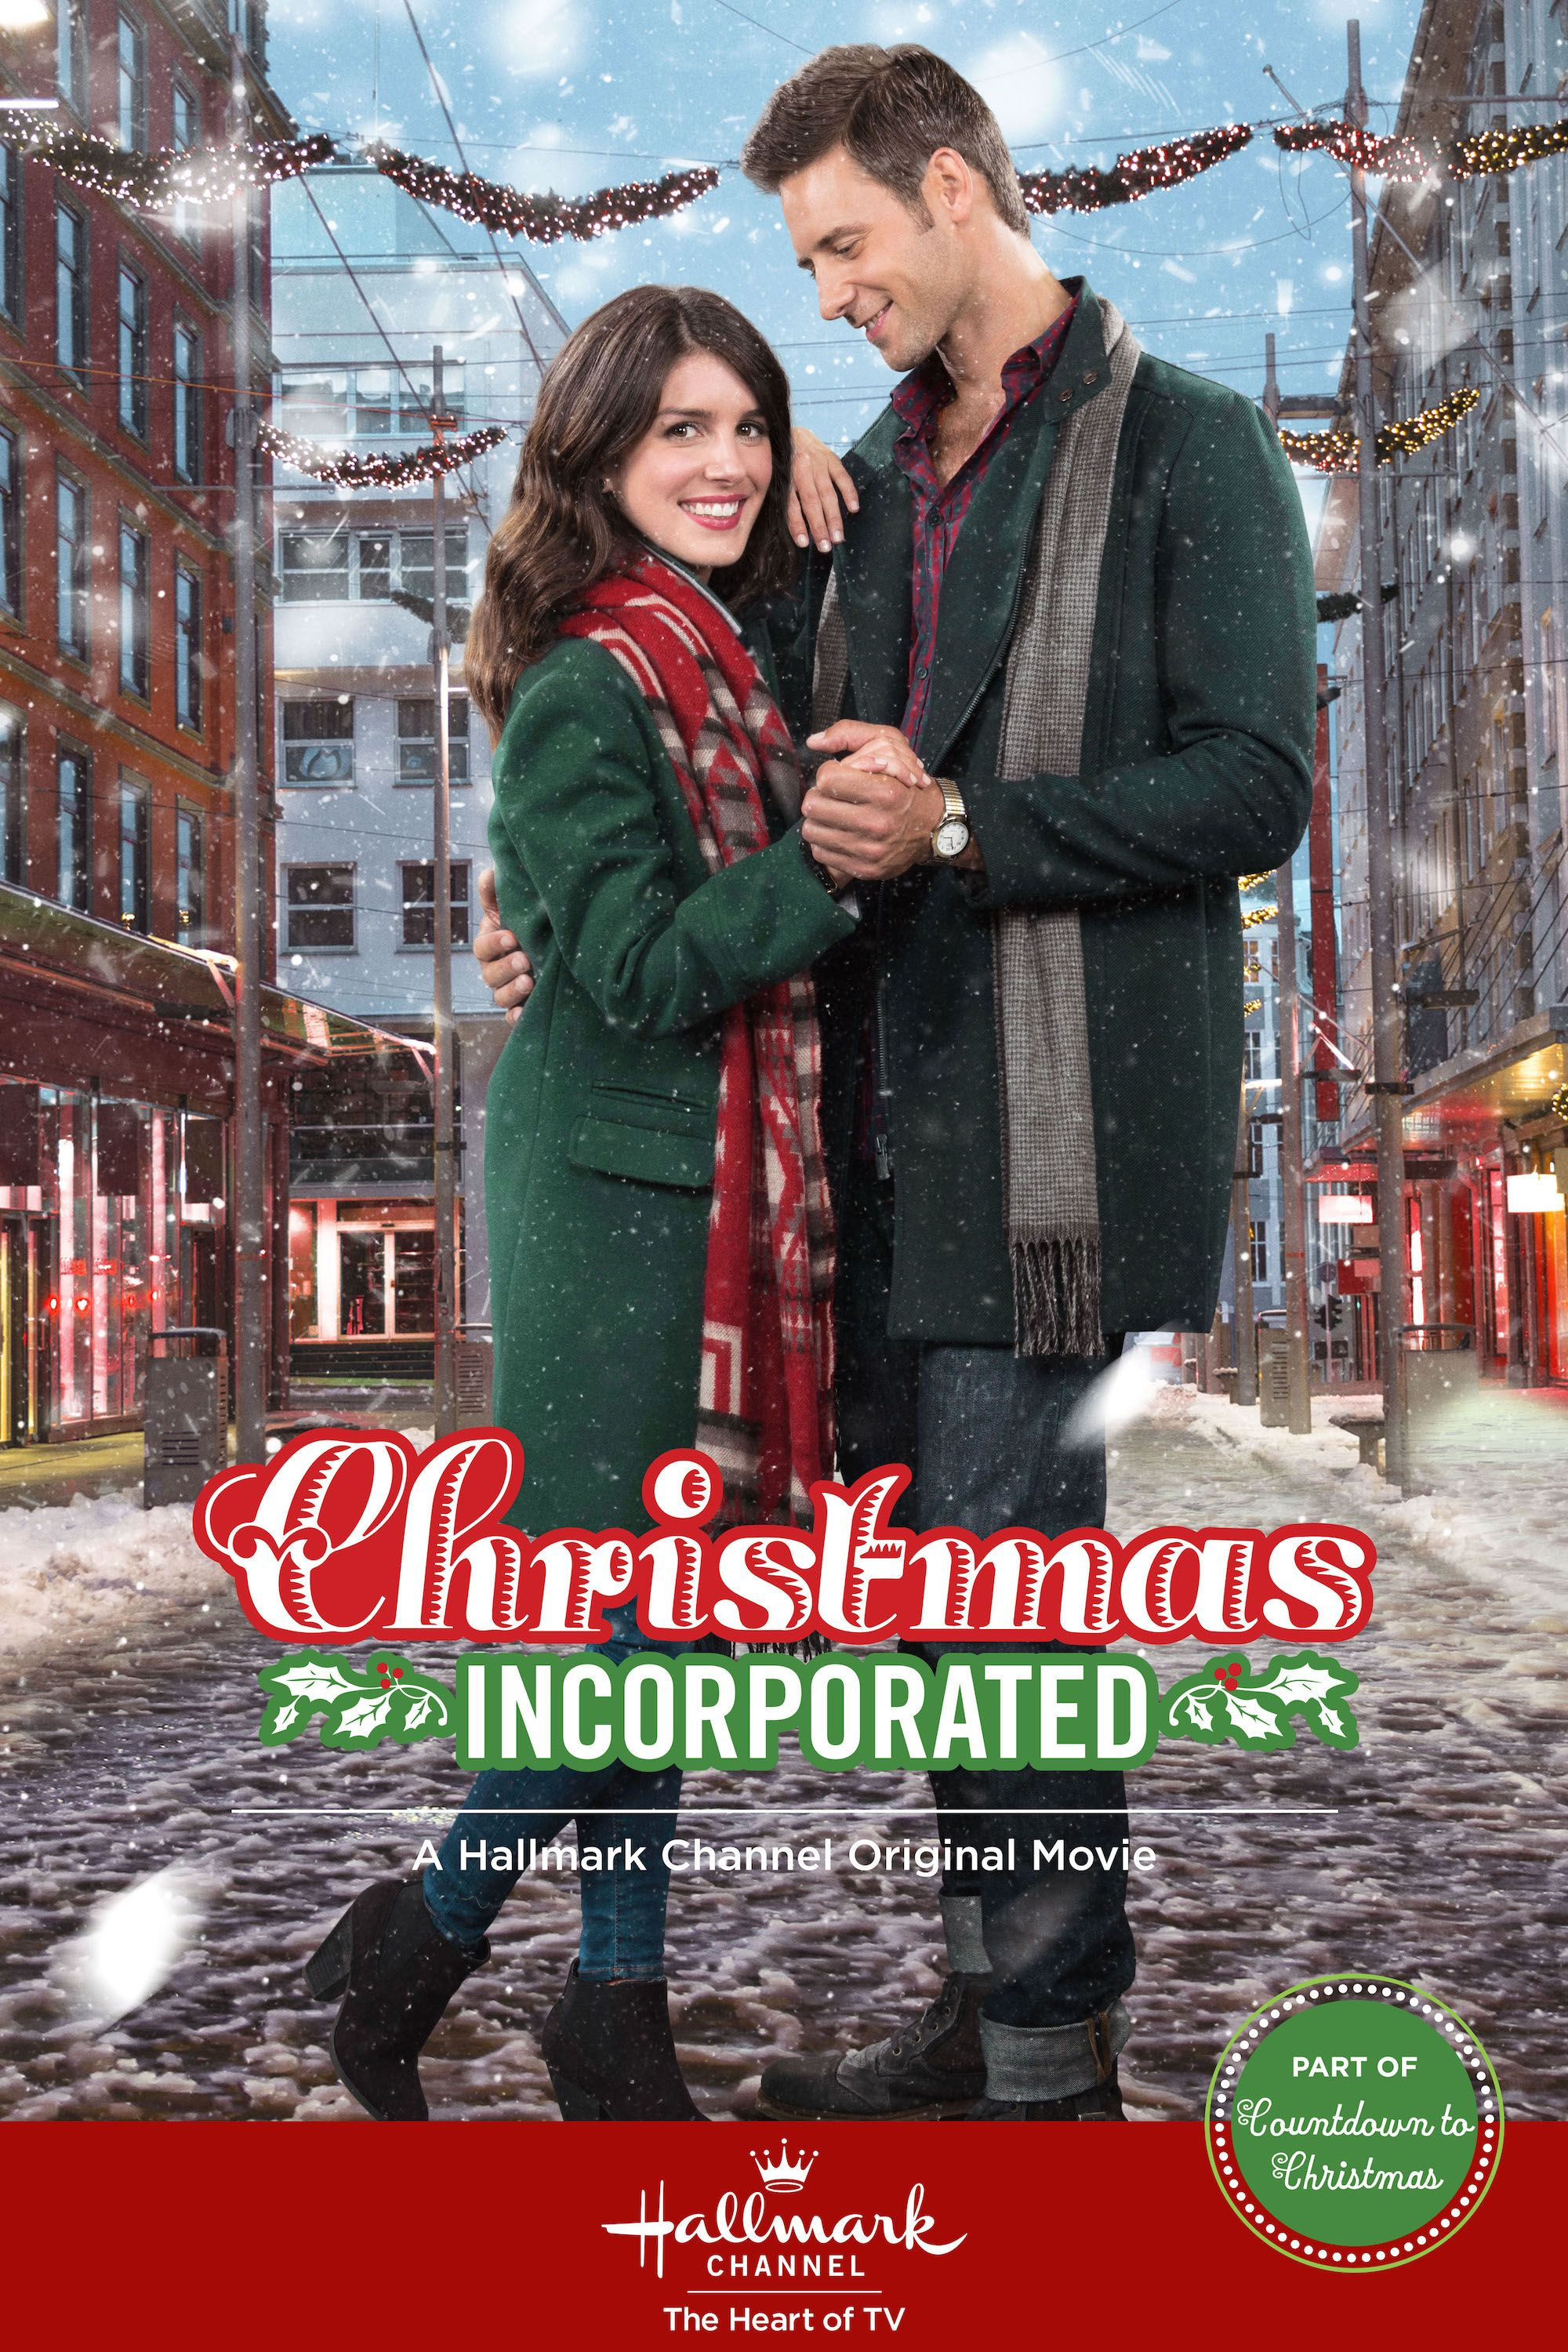 the best hallmark christmas movies ranked - Hallmark Christmas Movie List